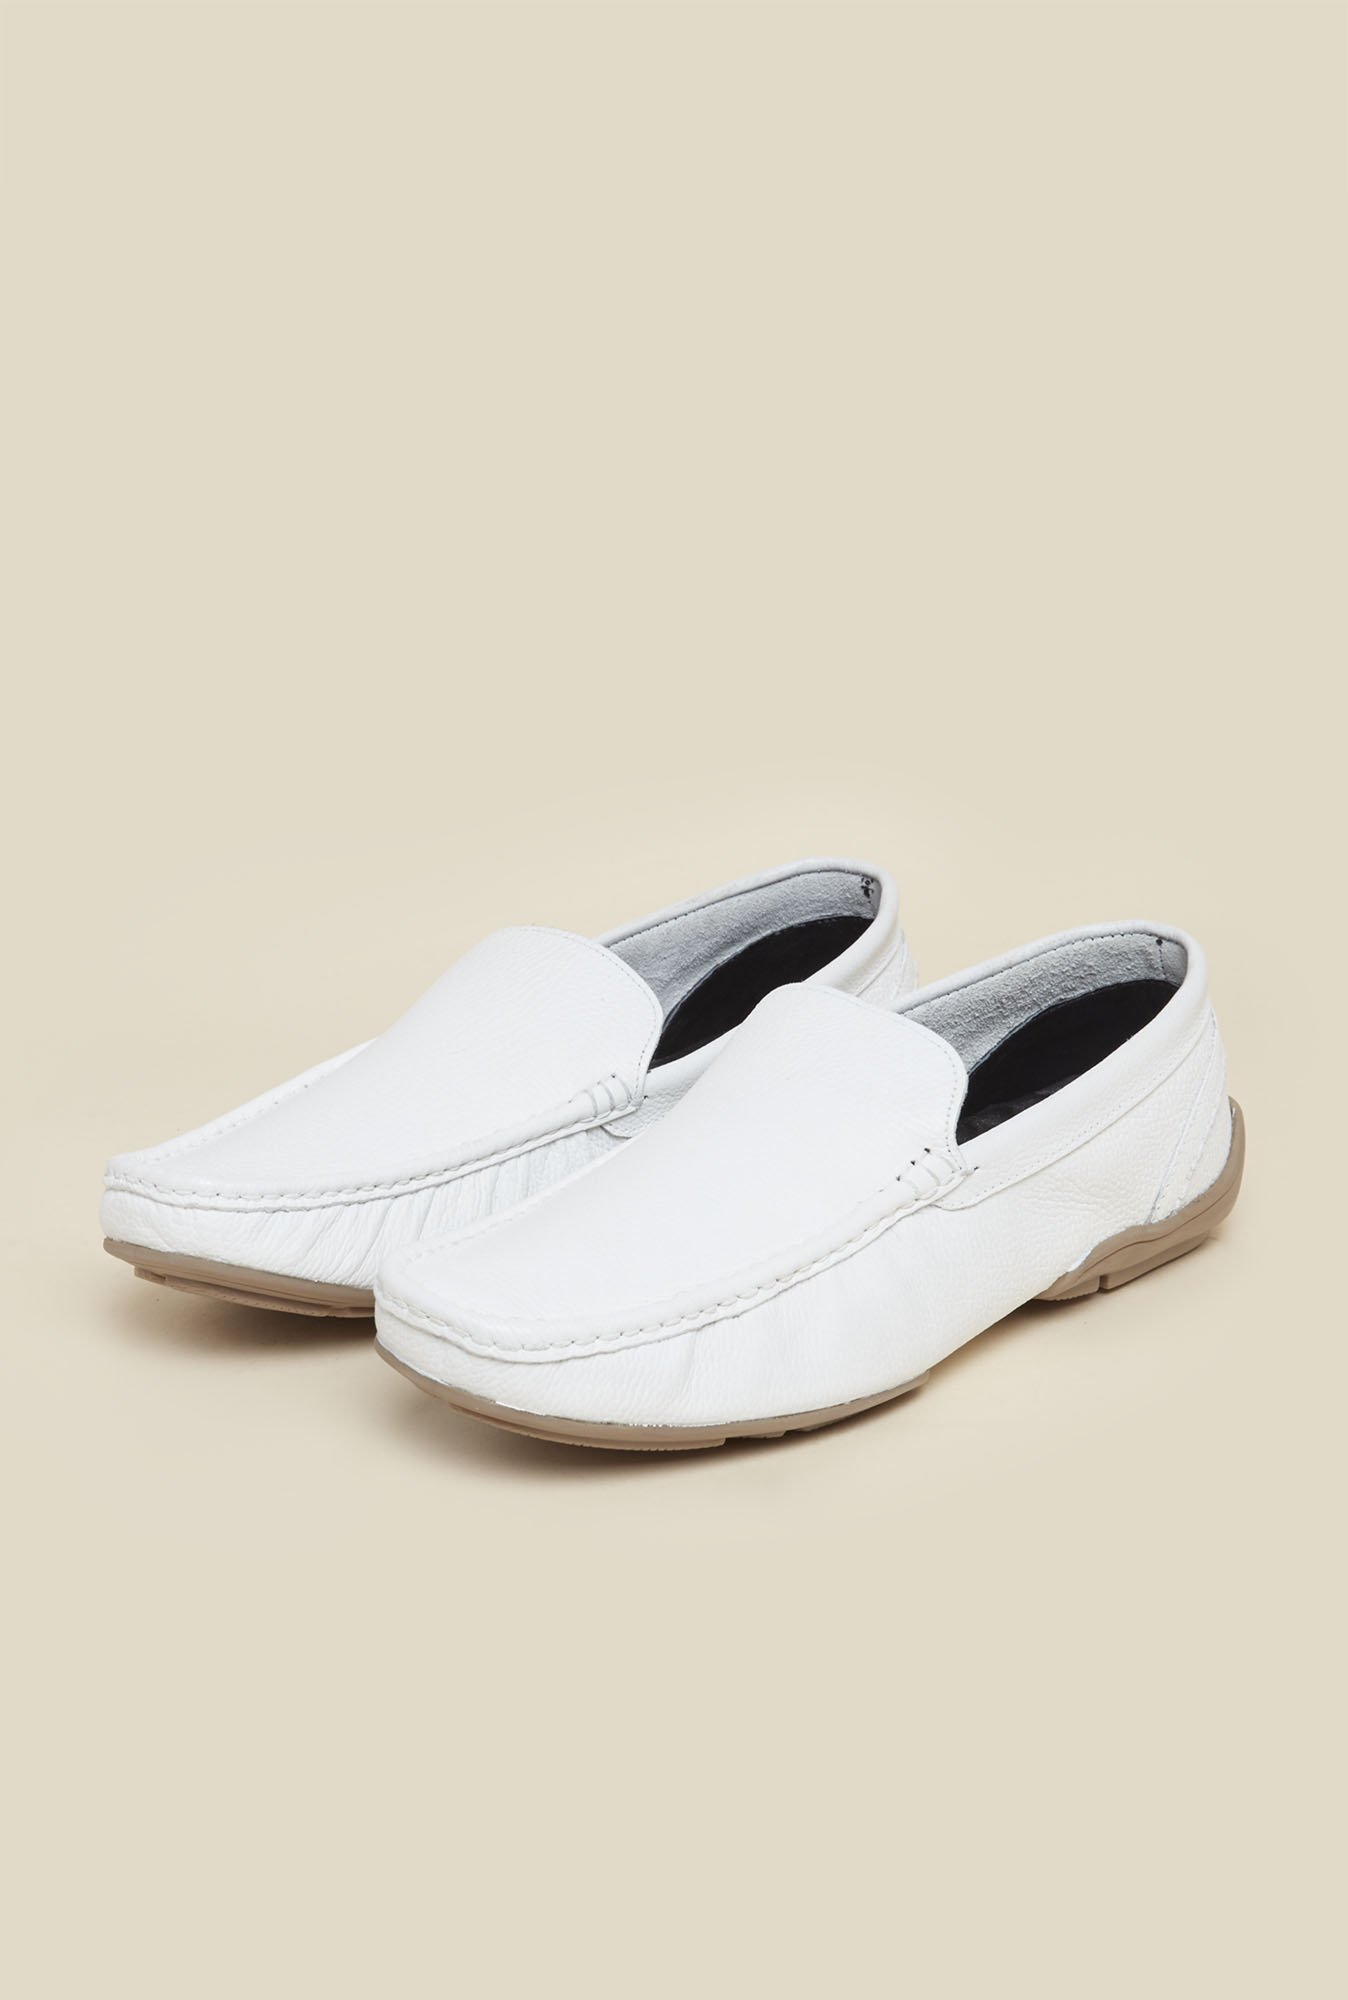 Mochi White Leather Formal Loafers